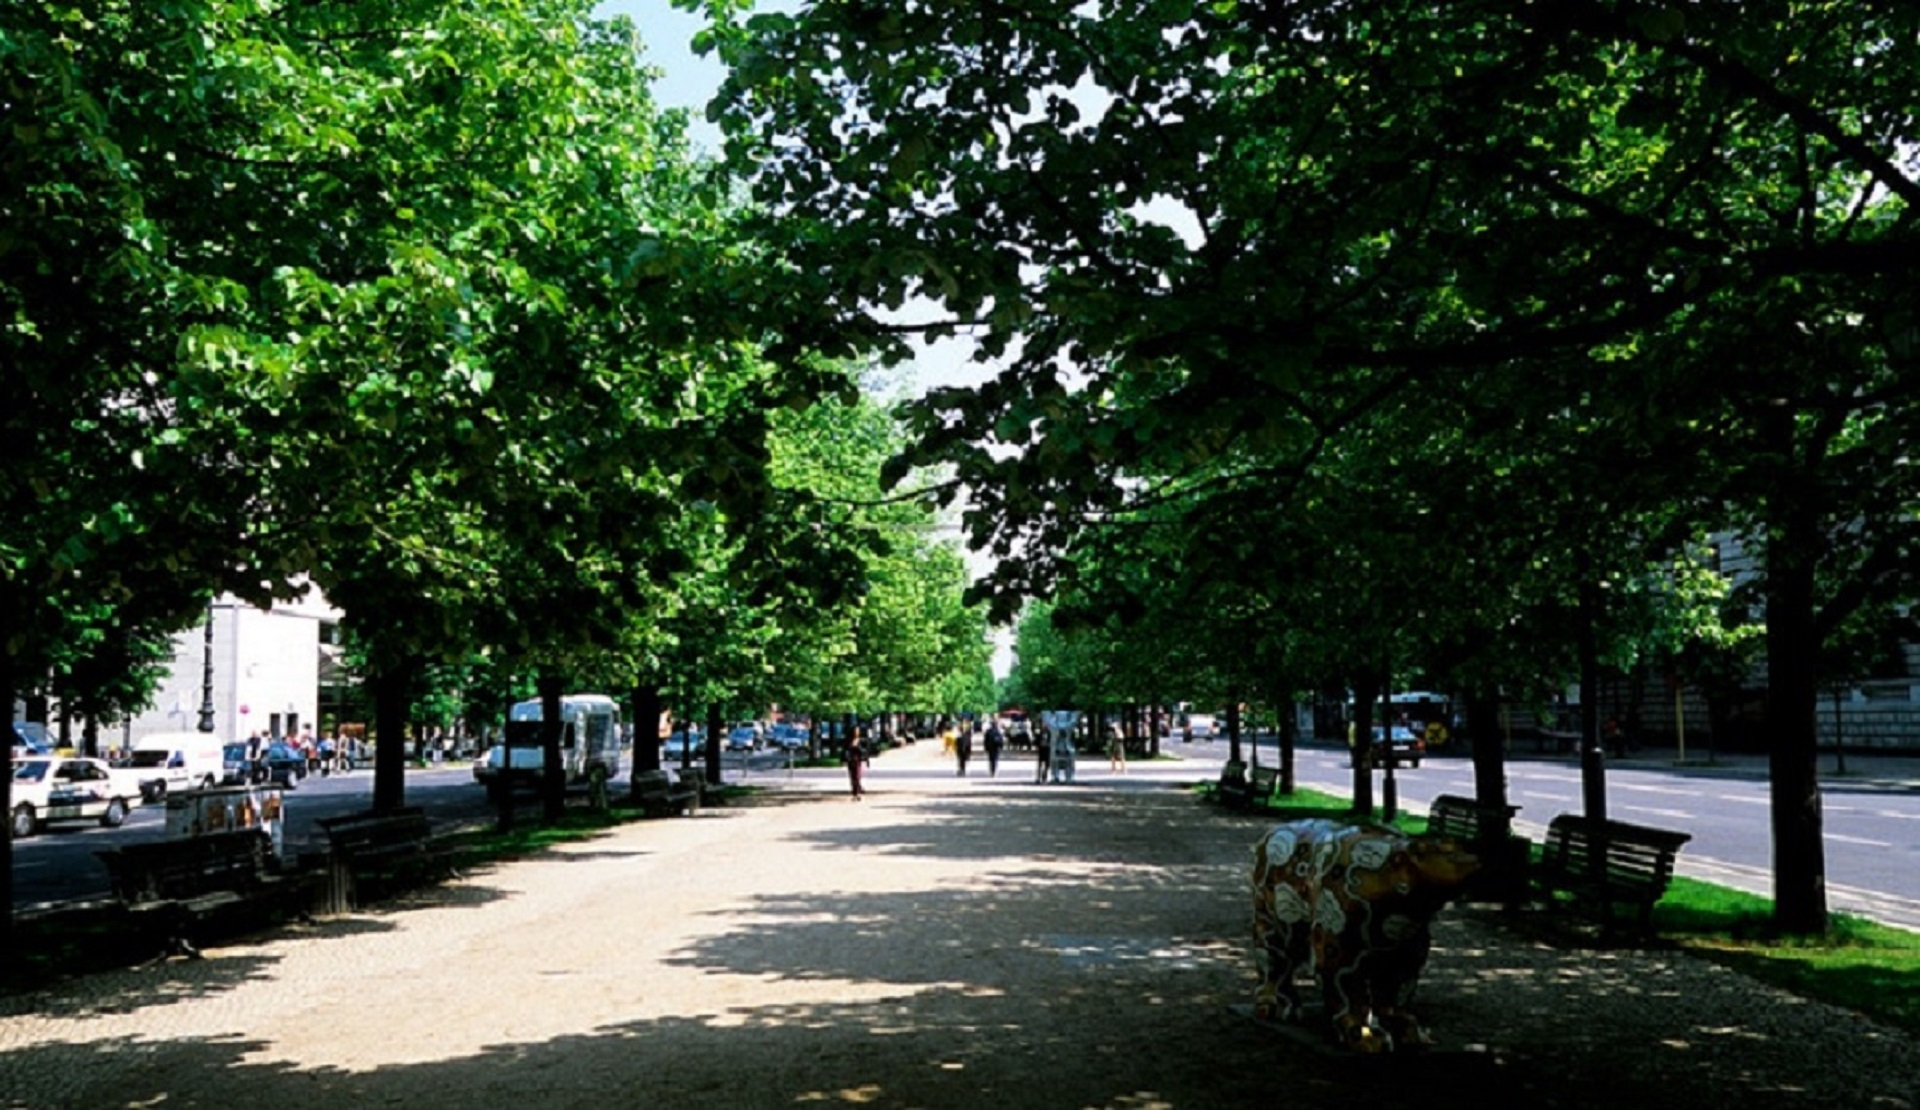 The importance of urban trees